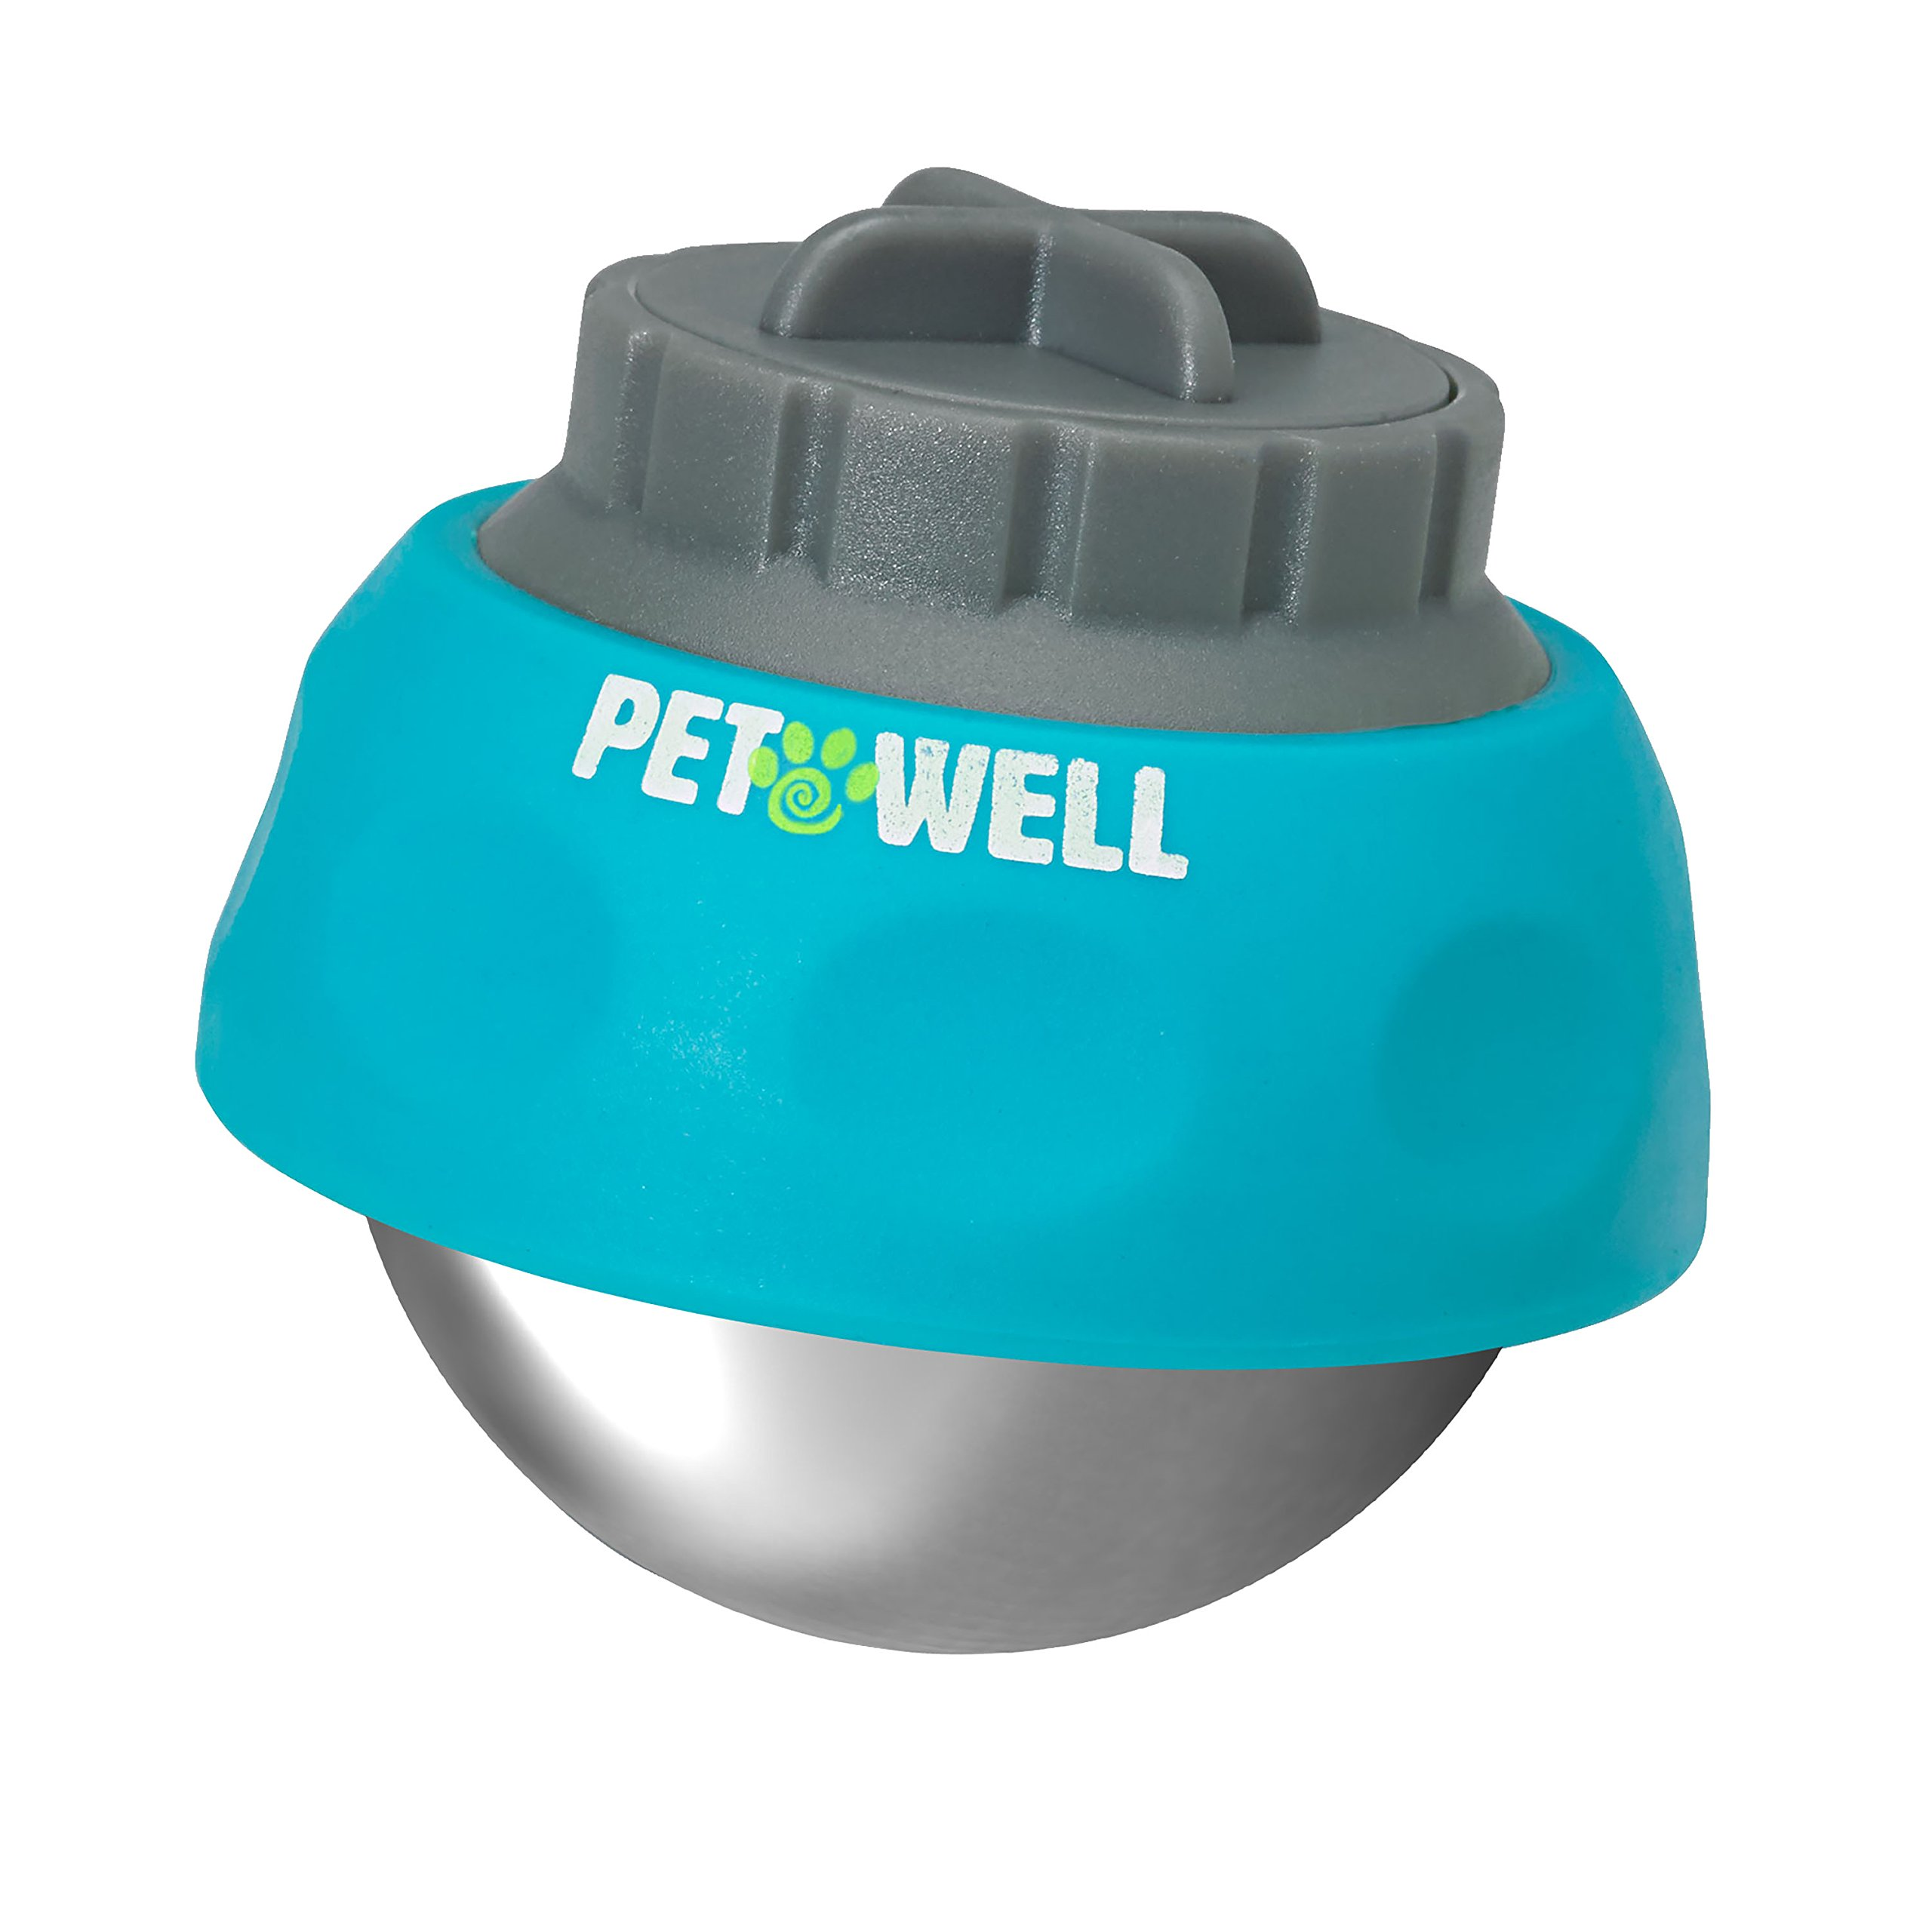 PetWell All-Over Handheld Massage Roller for All Size Pets (Dogs, Cats)